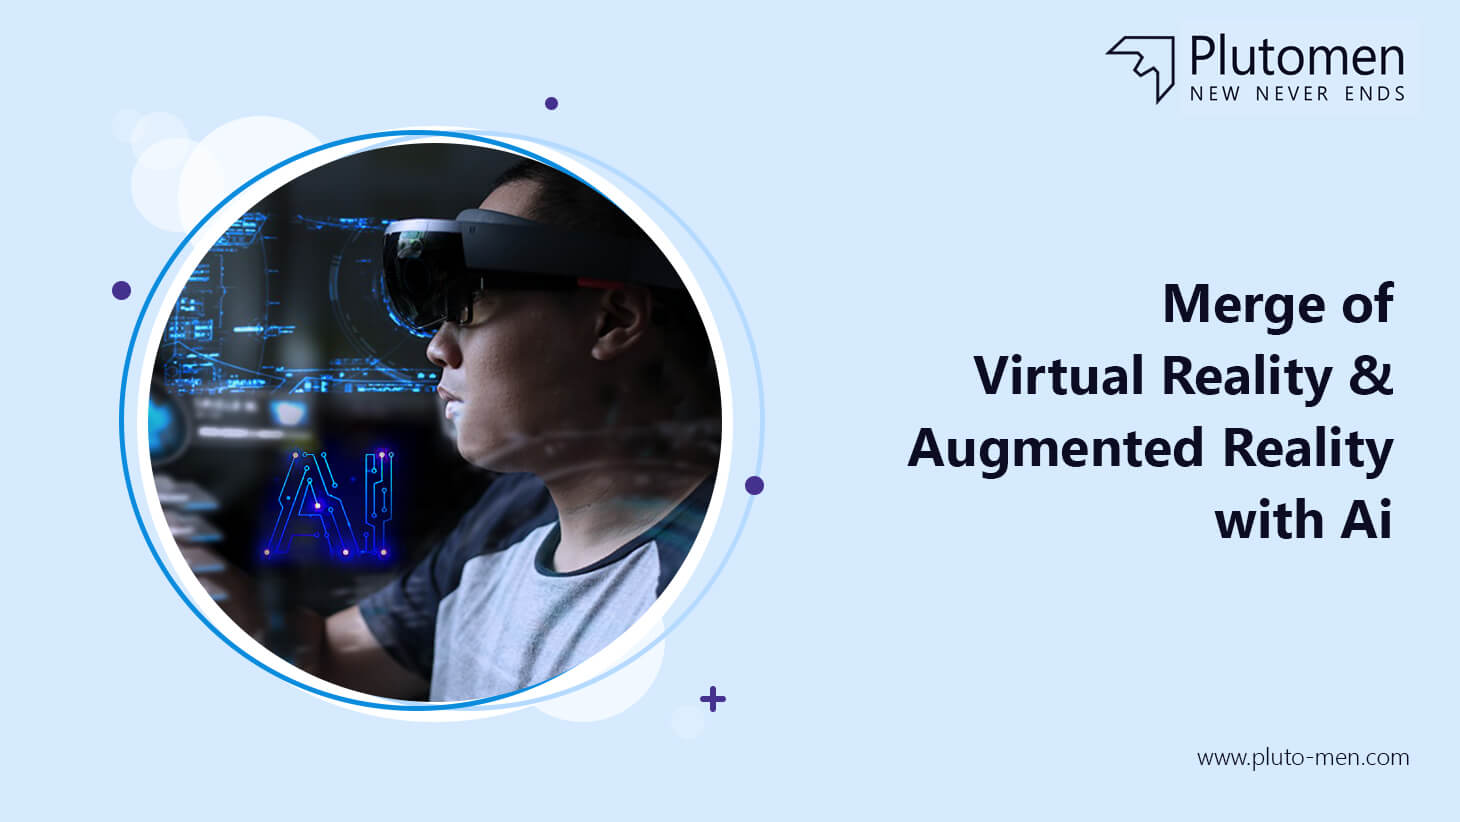 Merge of VR & AR with AI